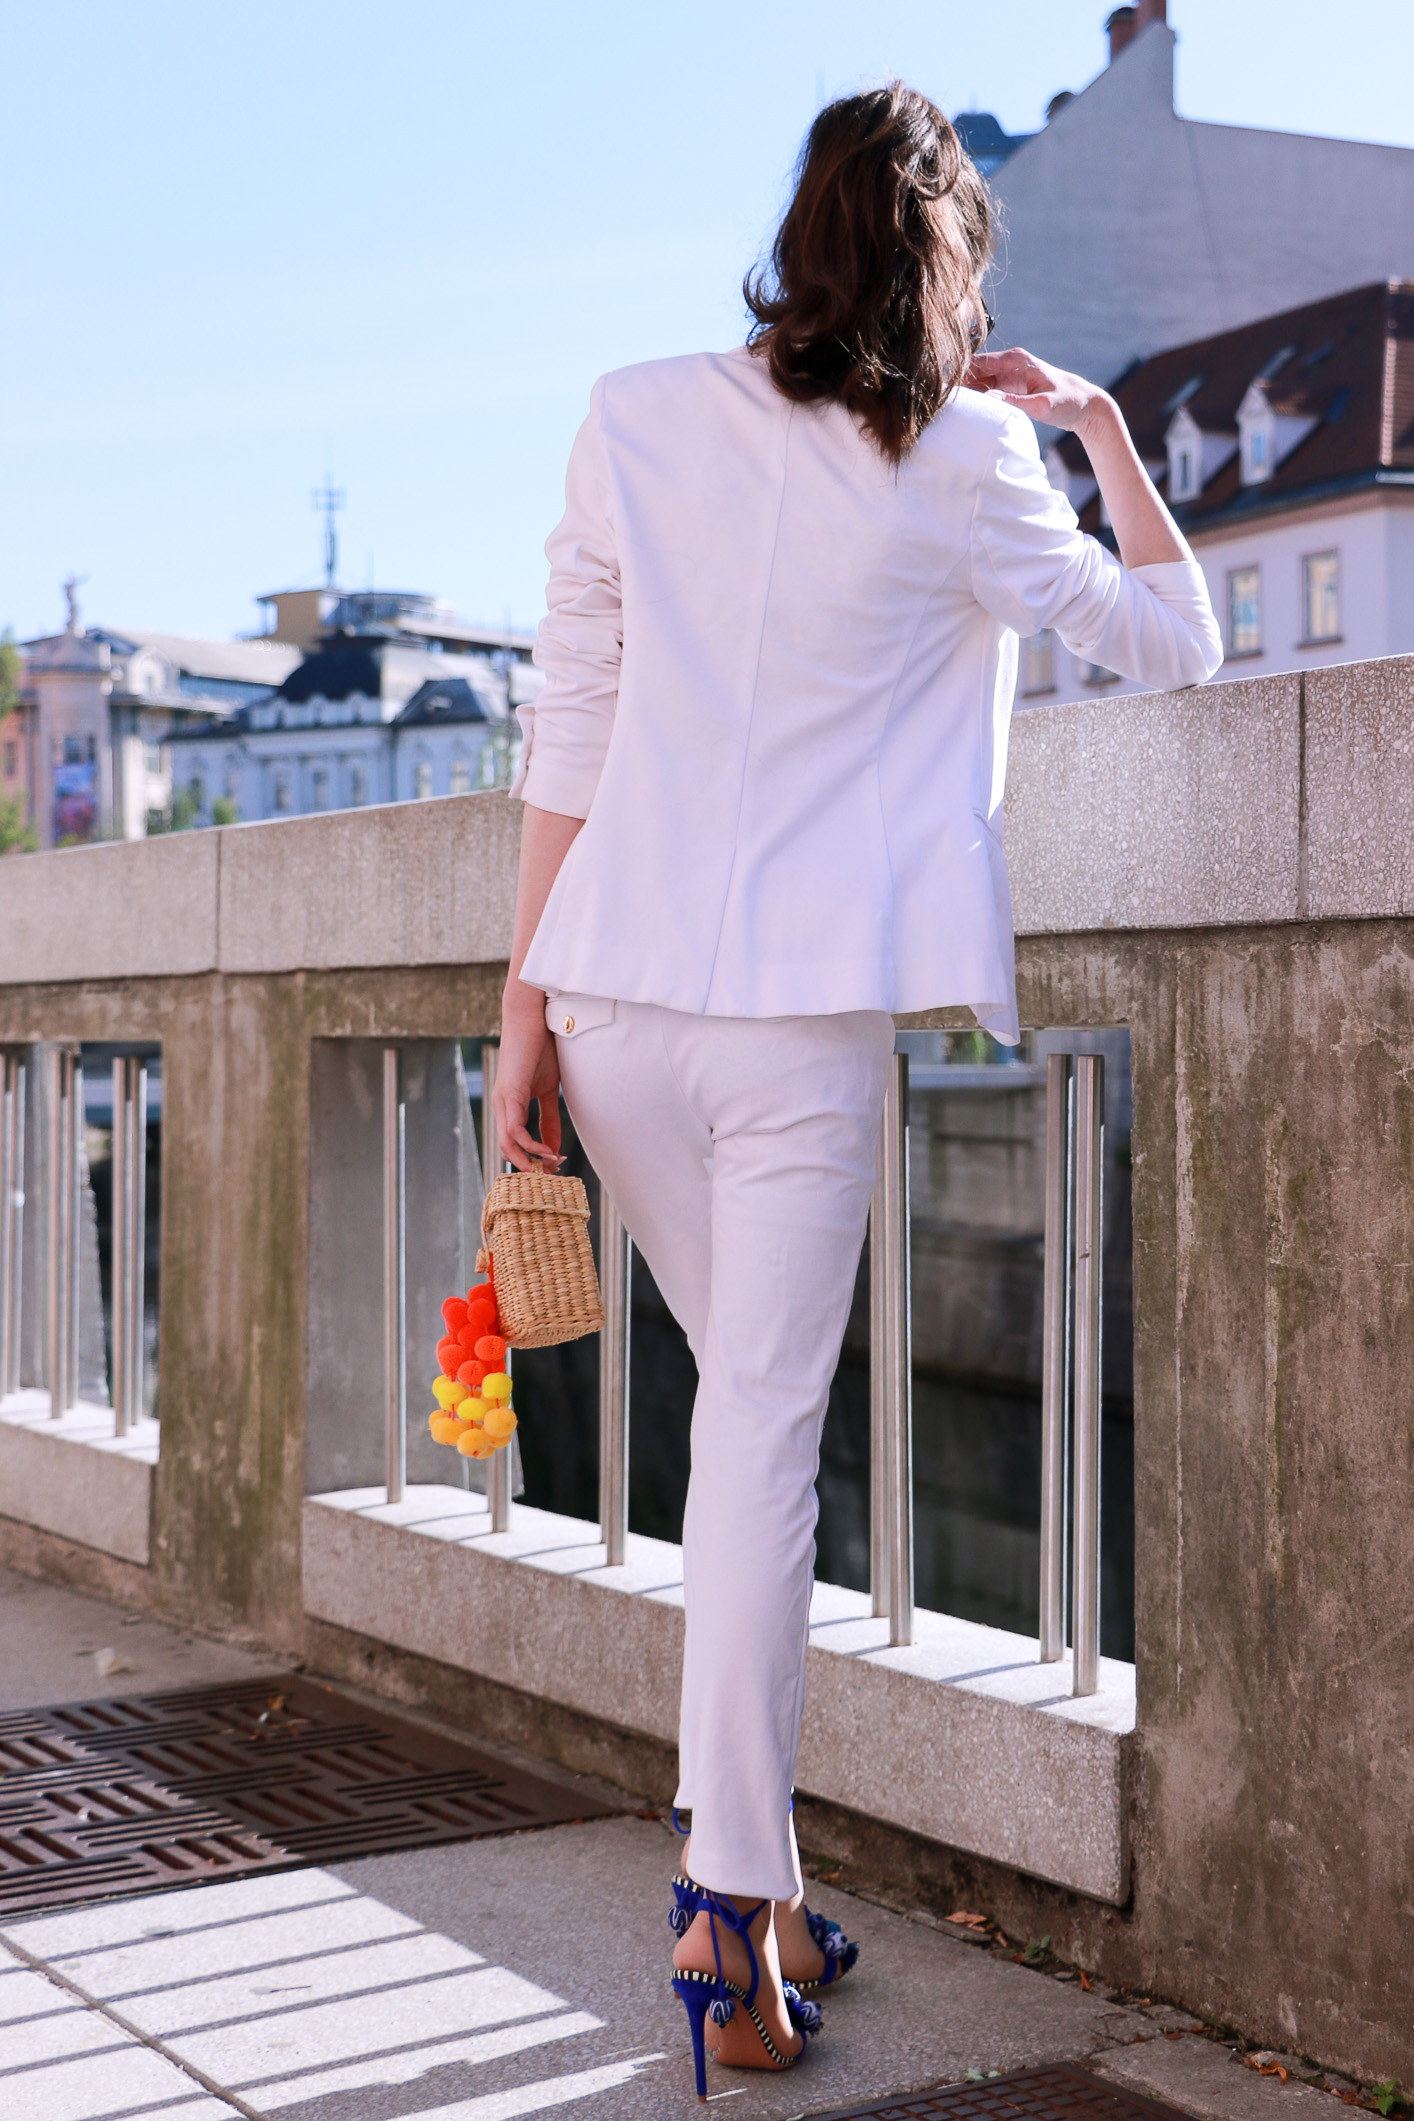 Fashion blogger Veronika Lipar of Brunette From Wall Street sharing her white cocktail party outfit